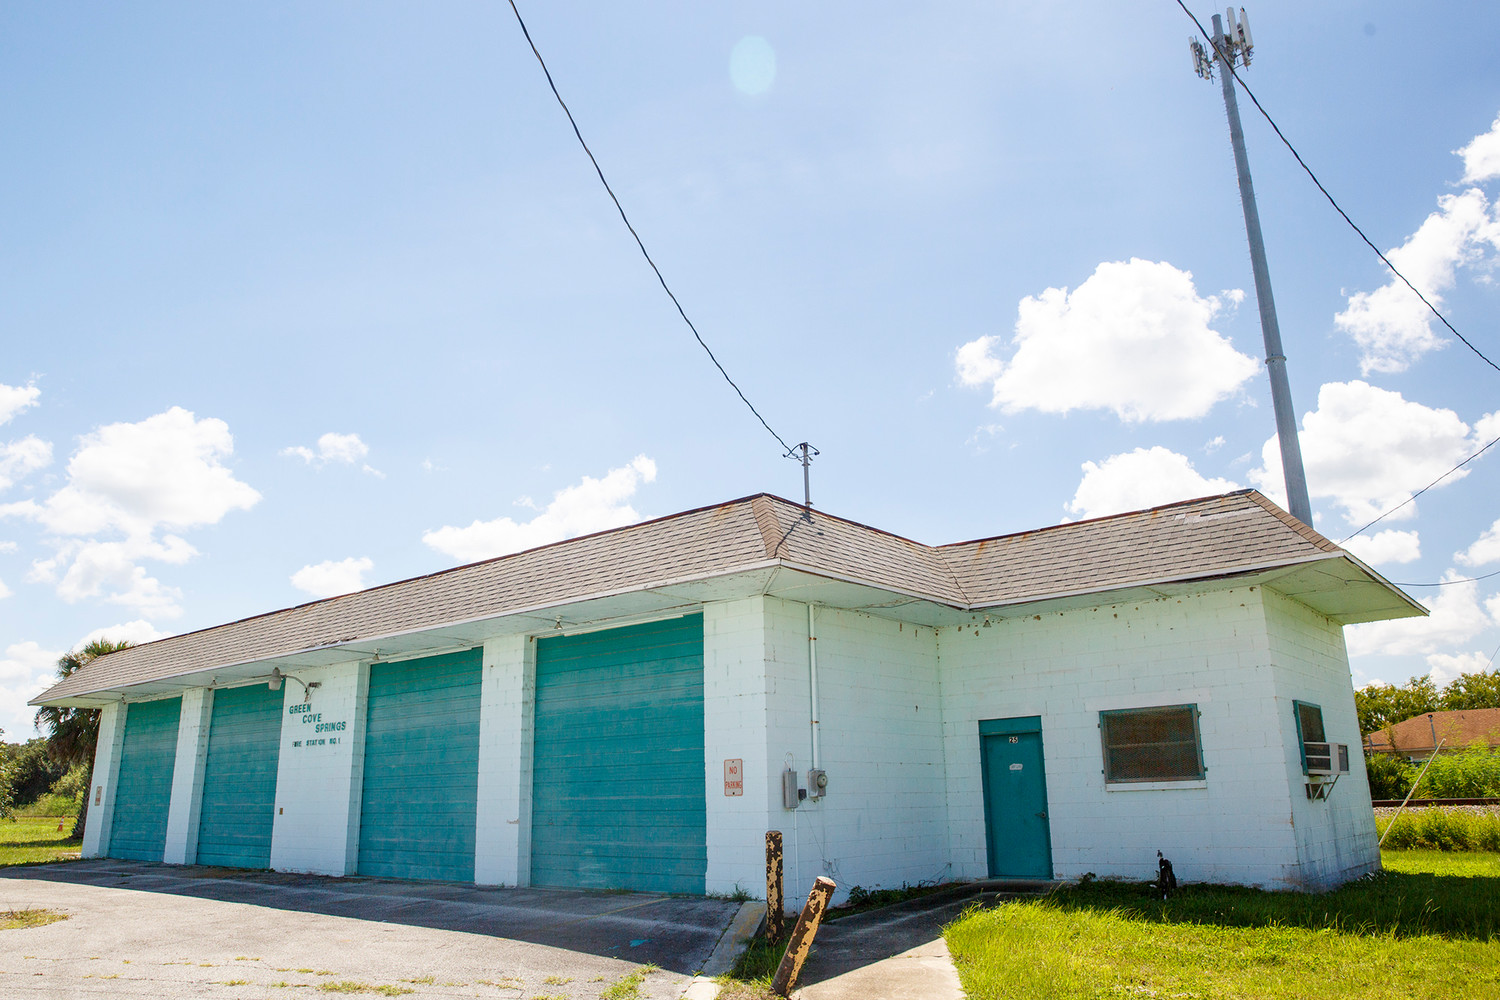 The city of Green Cove Springs will again look to sell the old fire station building located along Roderigo Ave. near the railroad tracks. The 2,100 square foot building sits on about an acre of land and the entire property is appraised at $134,000.